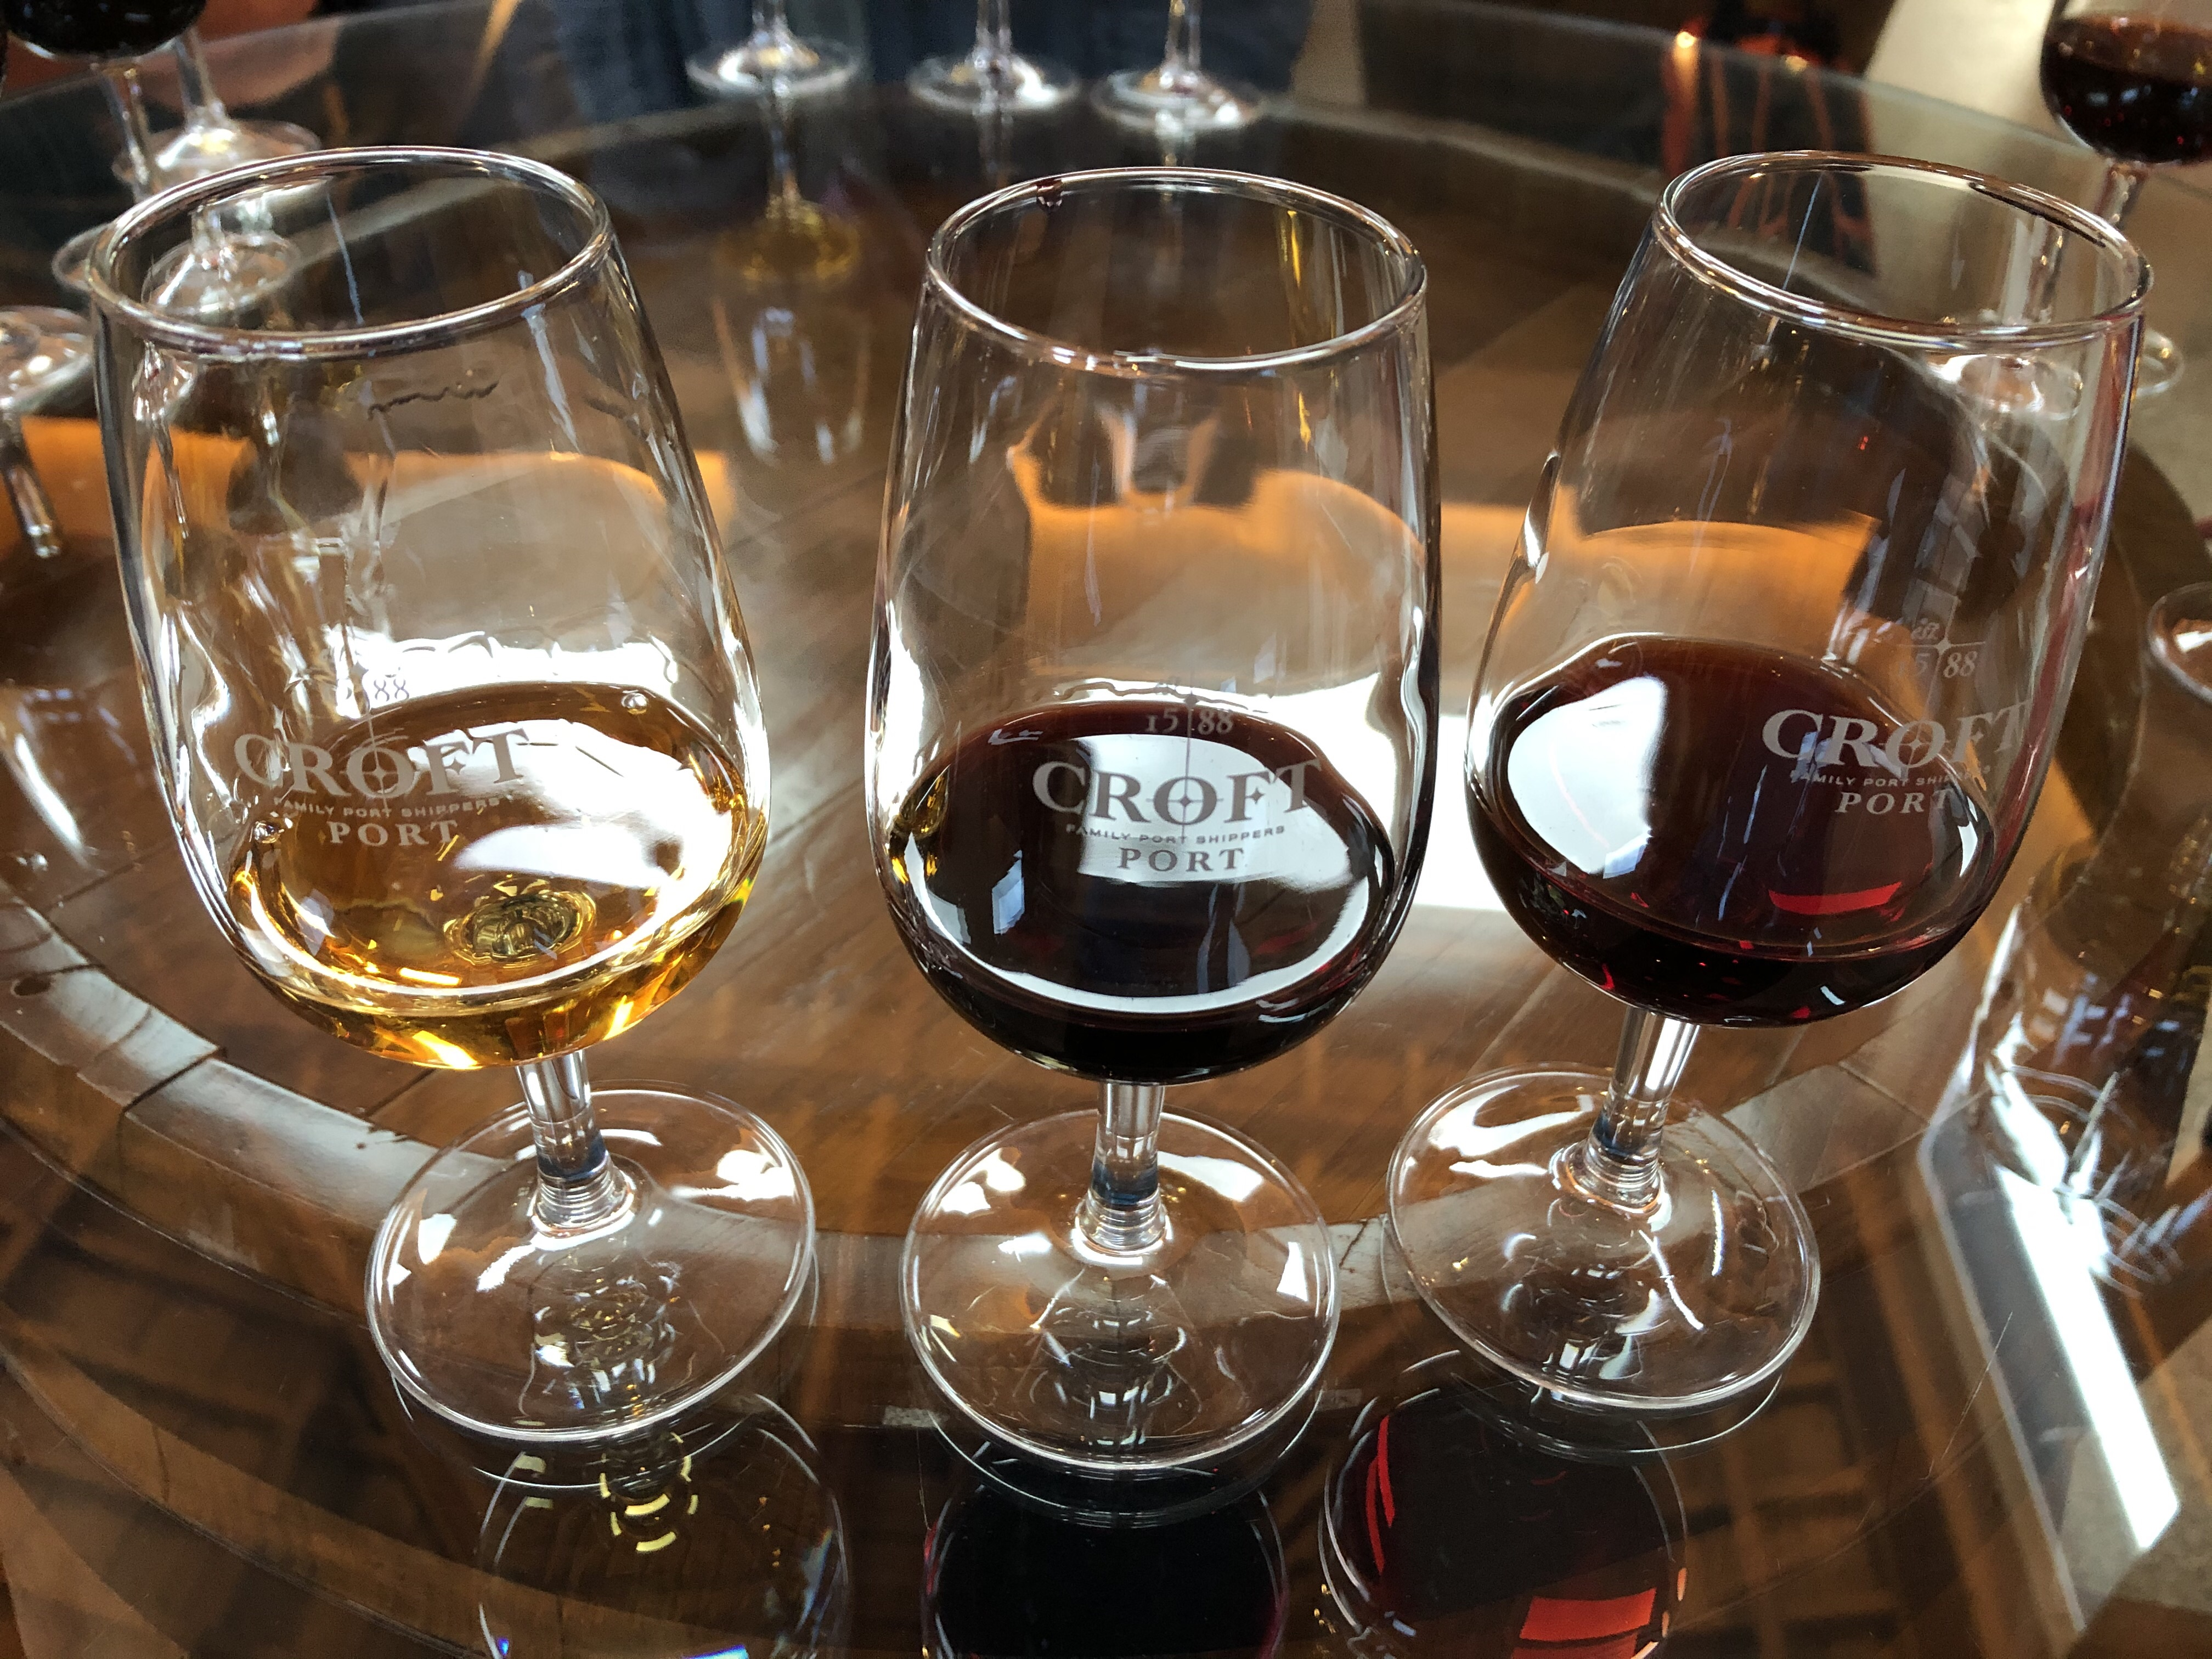 Croft Port Samples at Wine Tasting in Douro Valley